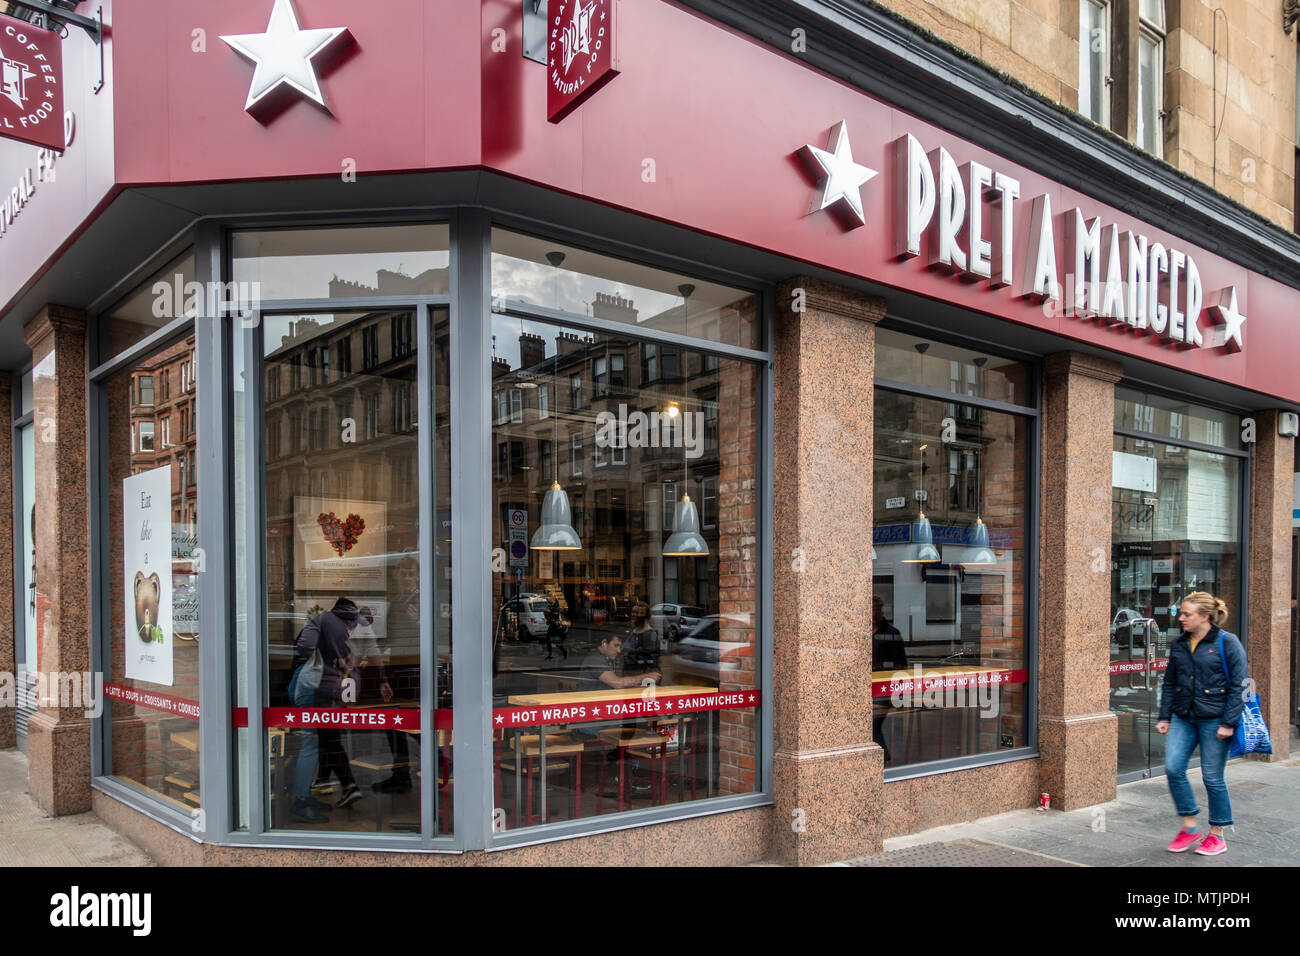 Pret a Manger sandwich shop / cafe in Byres Road in the West End of Glasgow, Scotland, UK - Stock Image